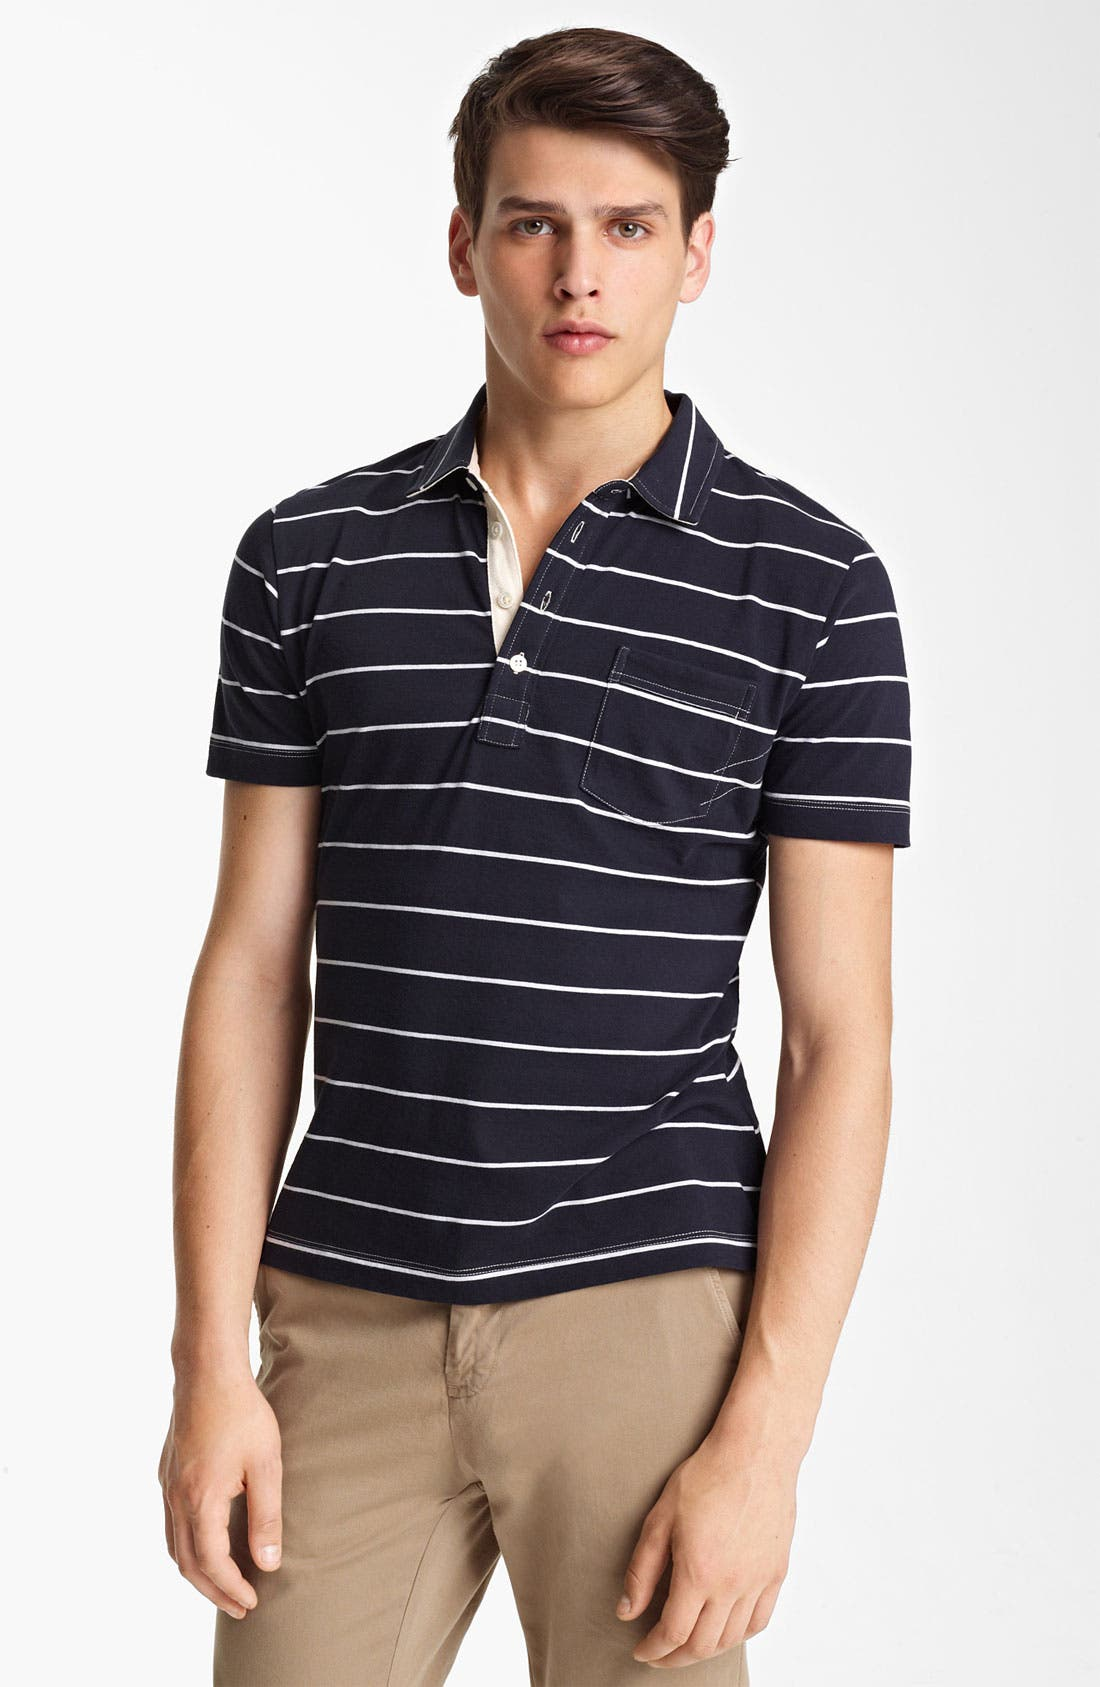 Alternate Image 1 Selected - Billy Reid 'Pensacola' Trim Fit Stripe Polo